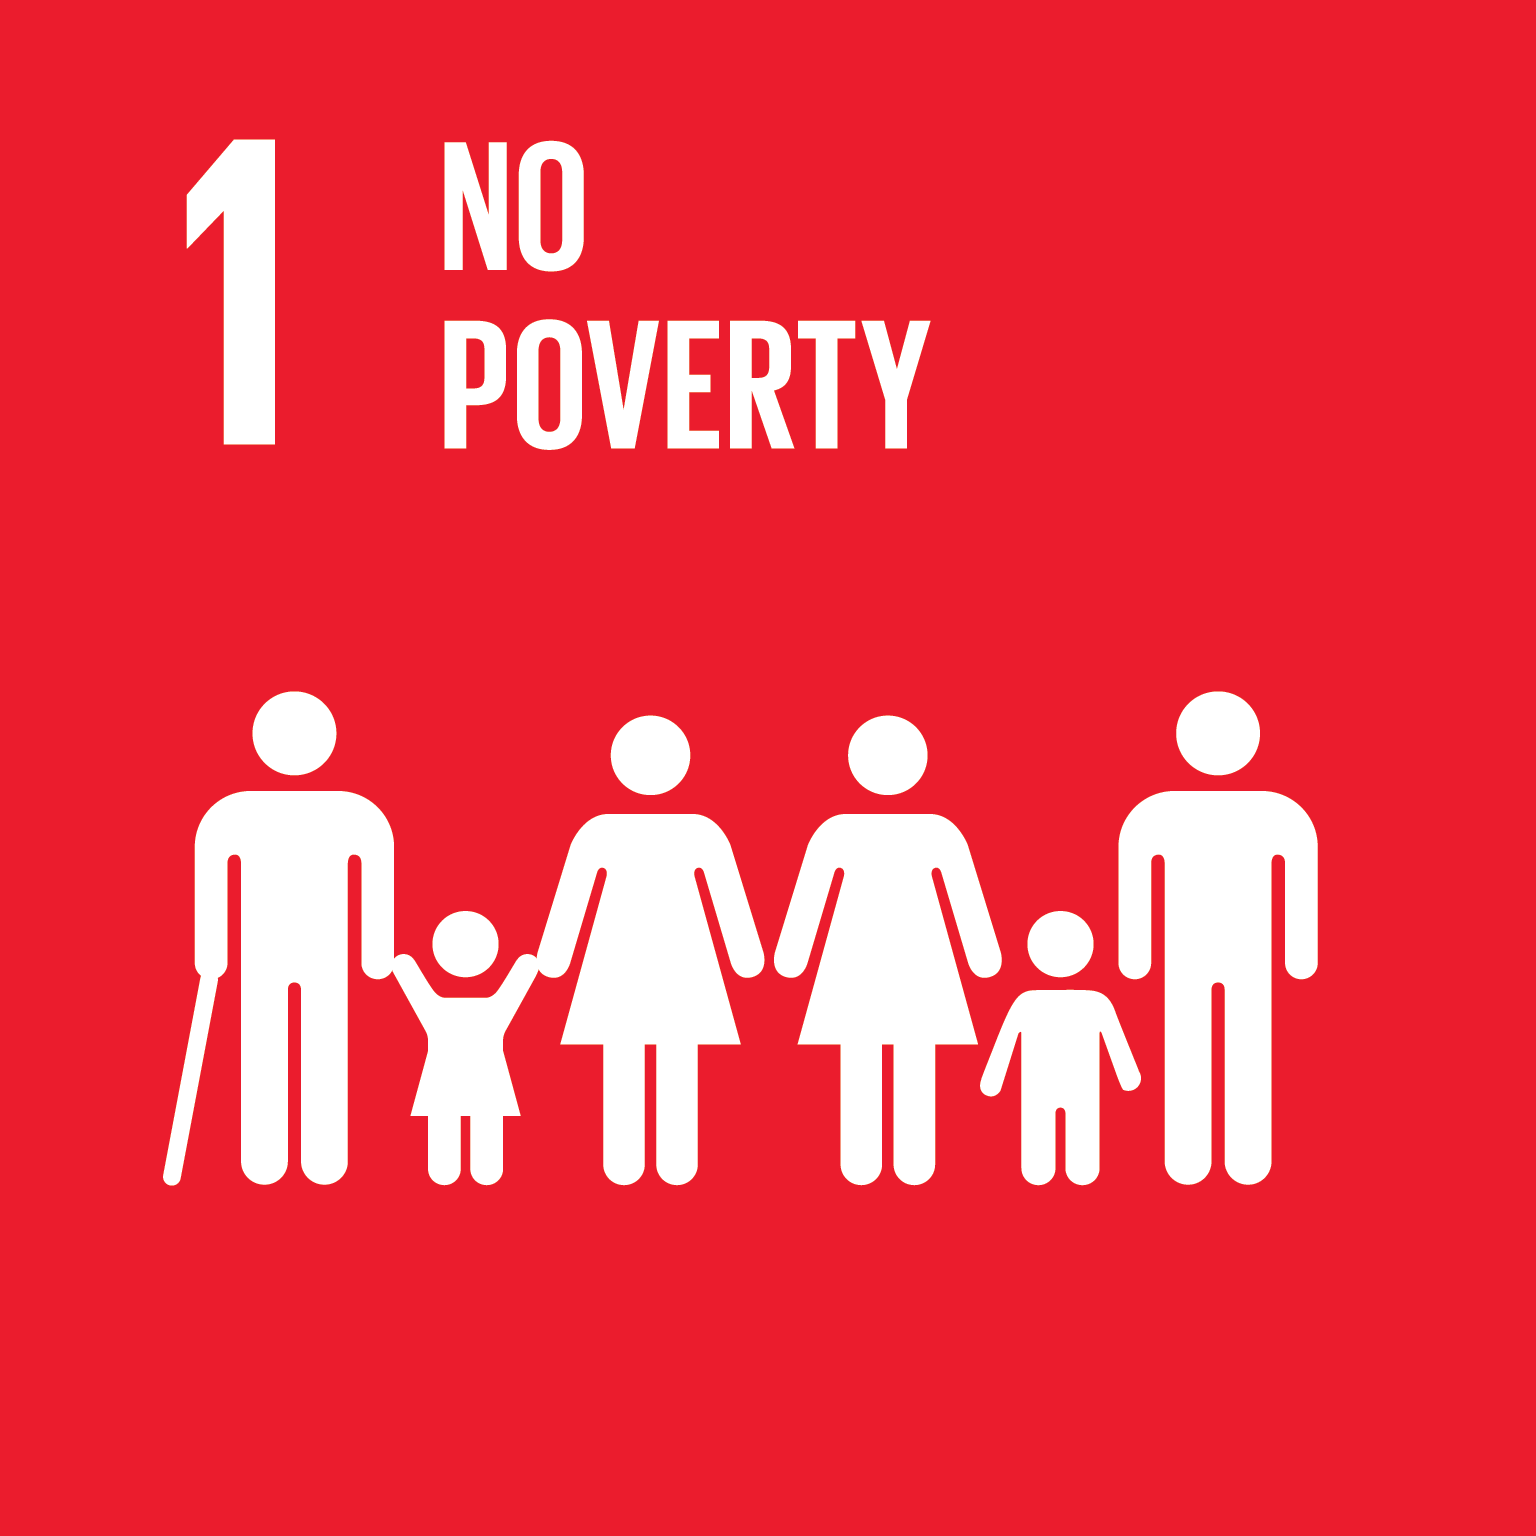 Sustainable Development Goal 1 -End poverty in all its forms everywhere